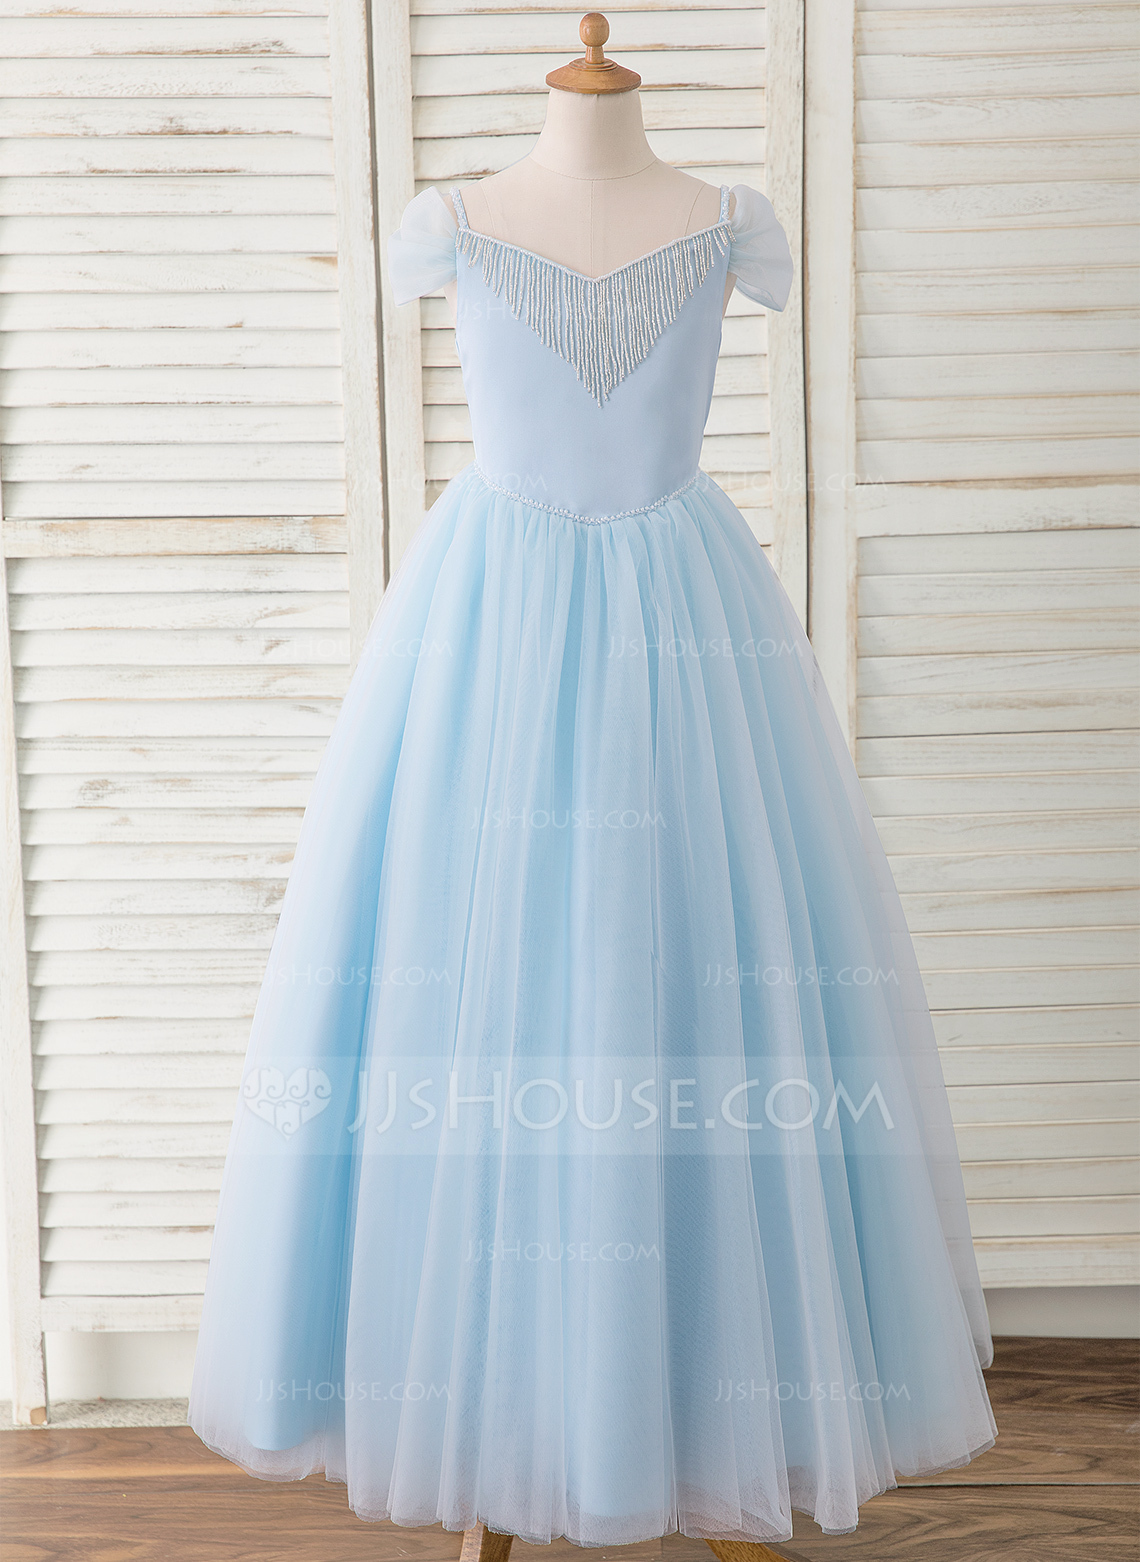 540a6a0c1fb Ball-Gown Princess Floor-length Flower Girl Dress - Satin Tulle Sleeveless  Off-the-Shoulder With Beading Bow(s)  183539